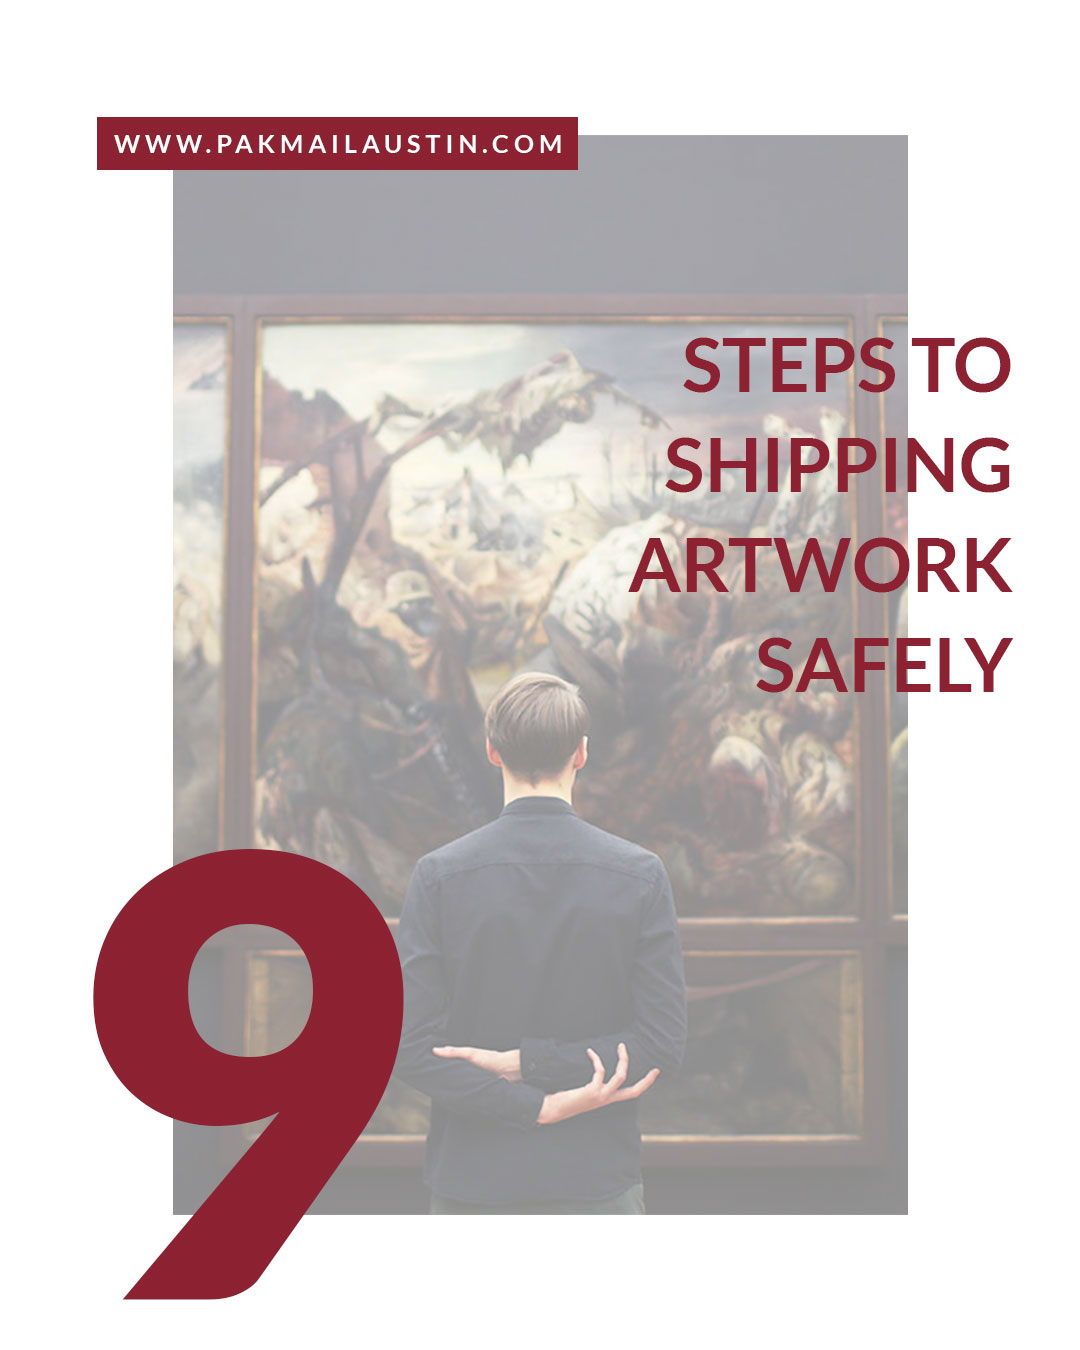 9 Steps for Shipping Artwork Safely